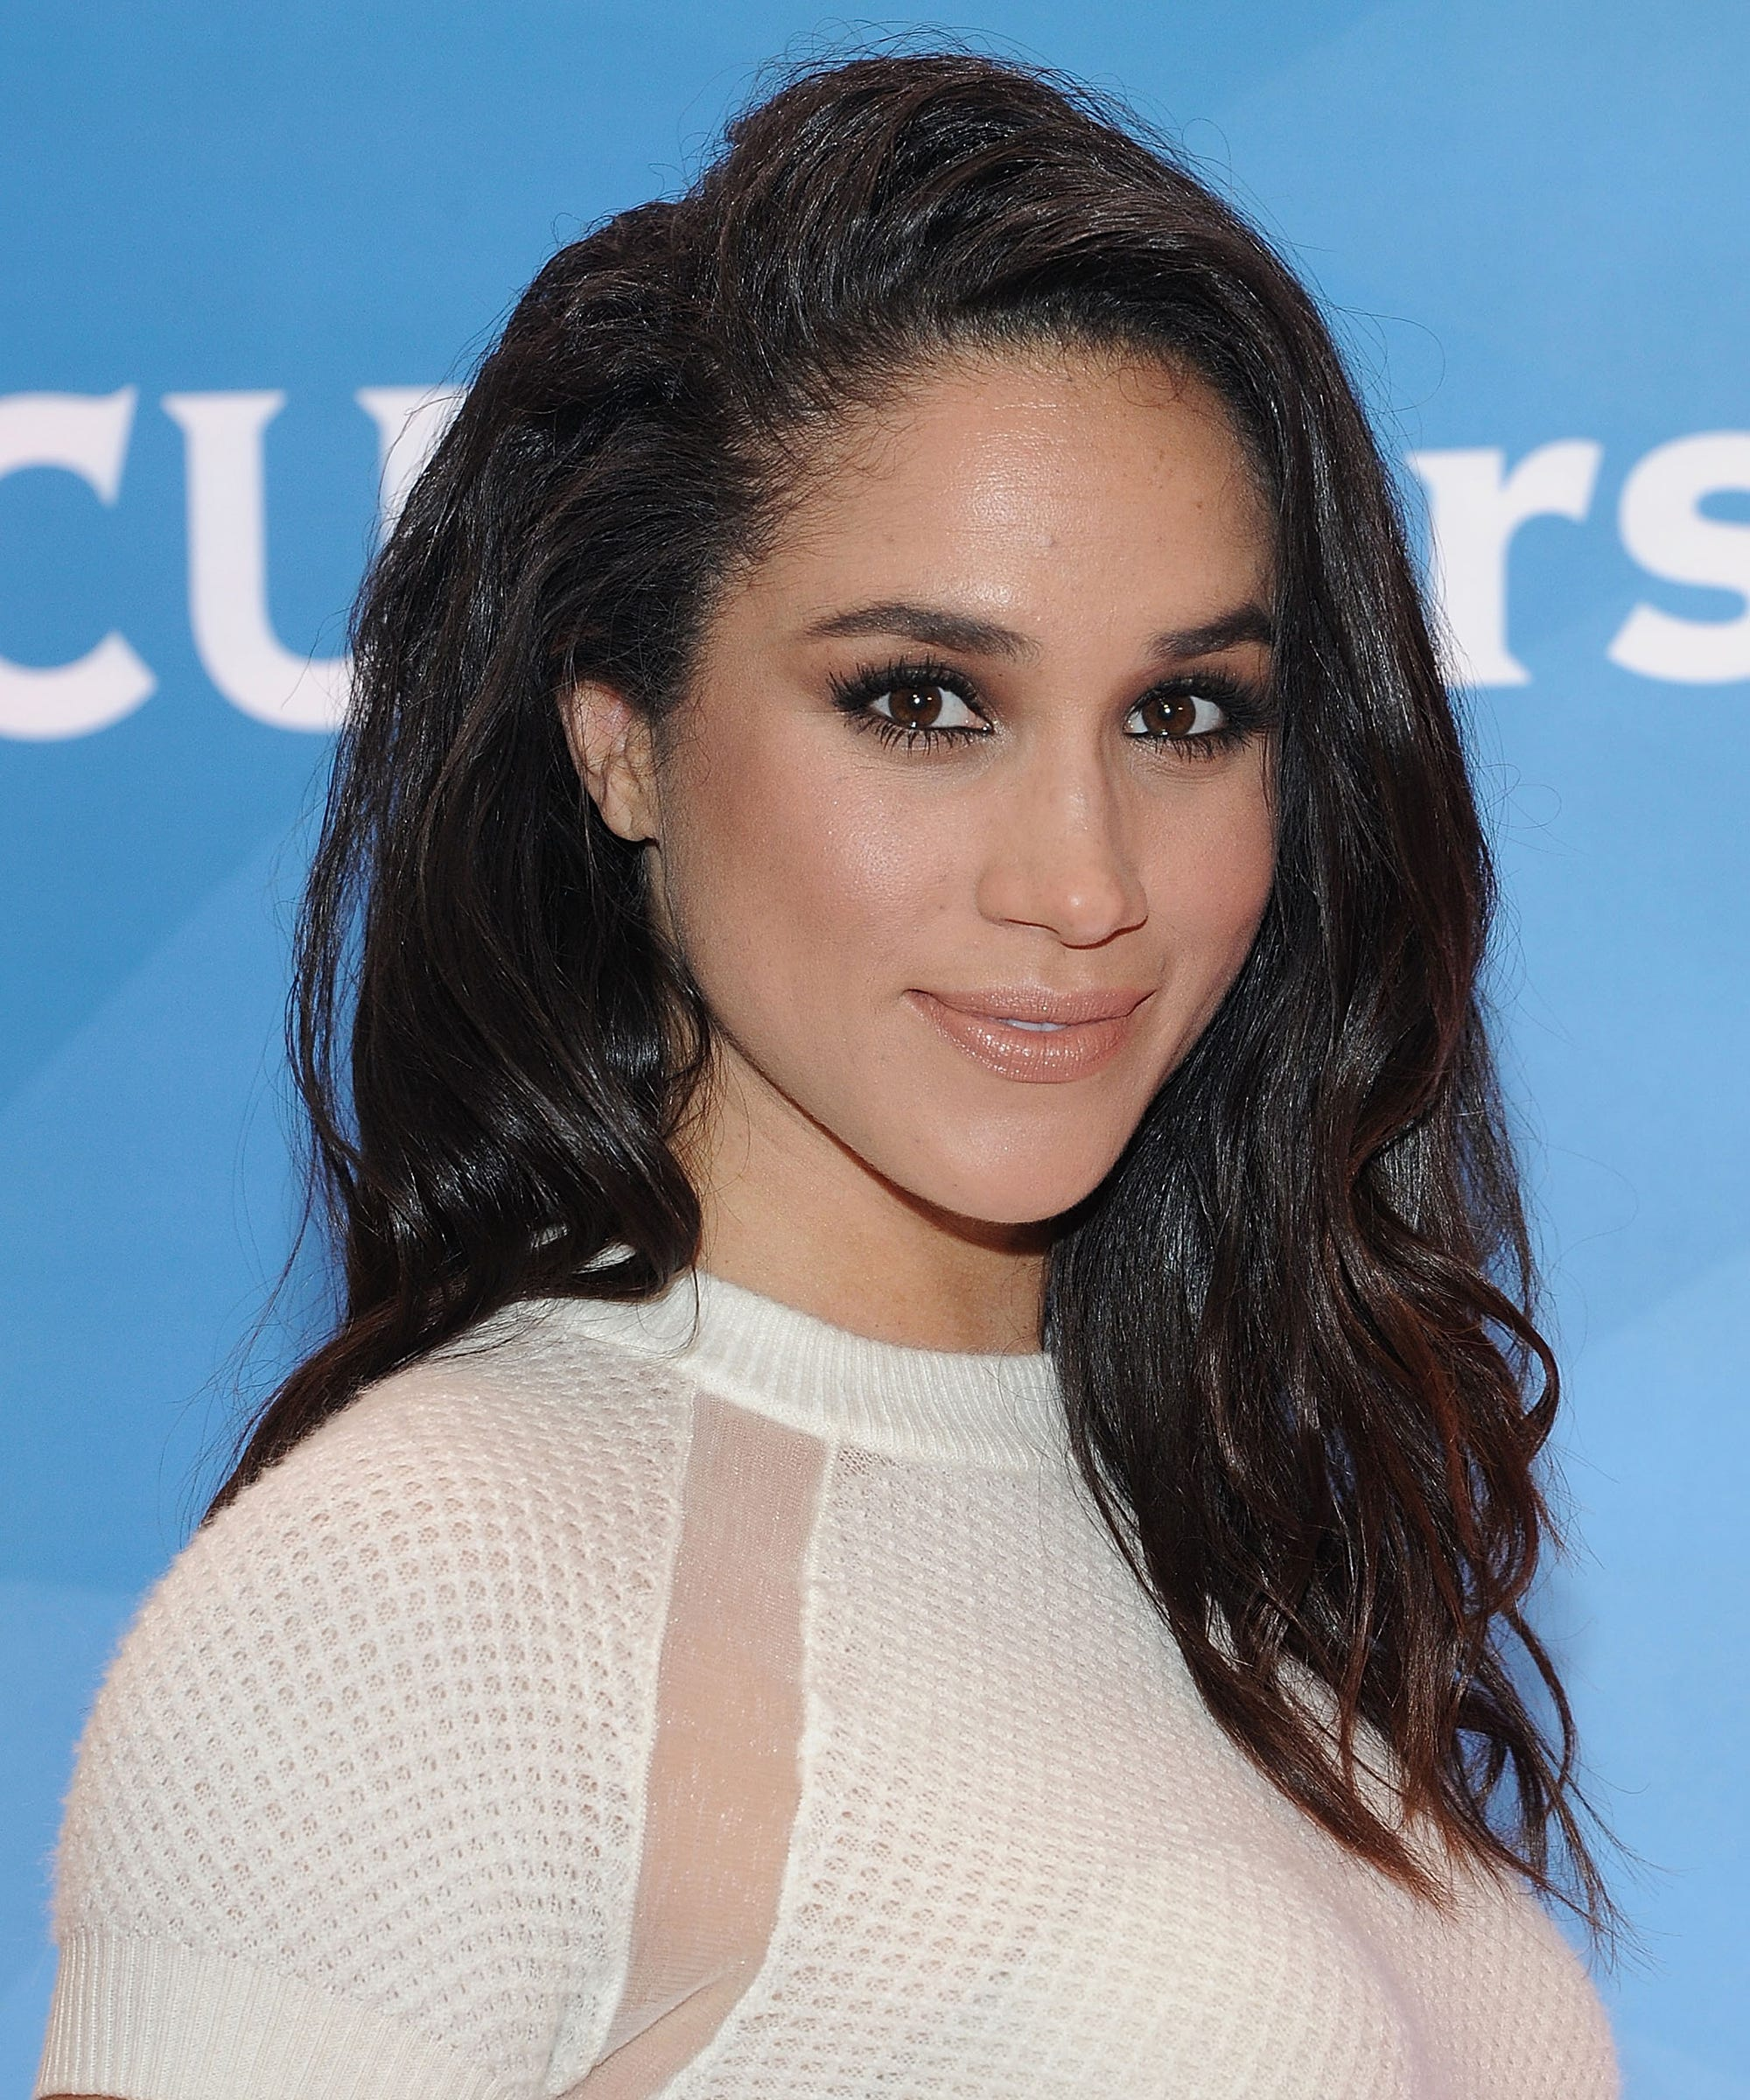 70f58884478ff Meghan Markle Straight And Natural Hair Photos